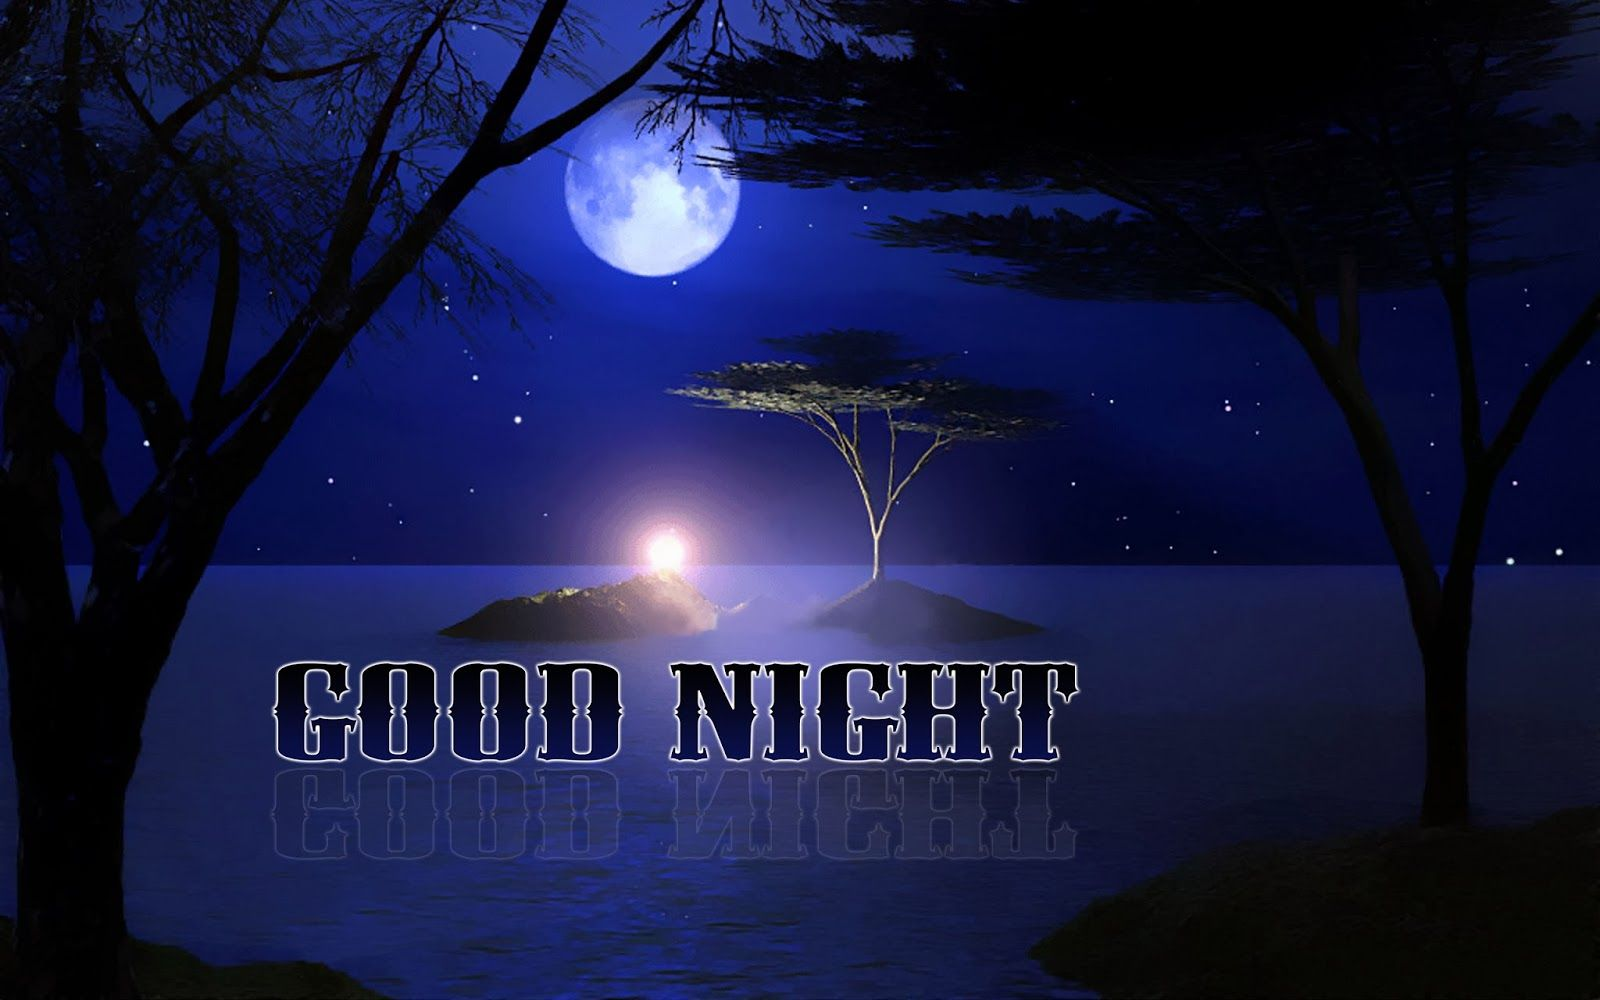 Good Night Text Swiming On River S Water Image Hd Wide Water Images Night Image